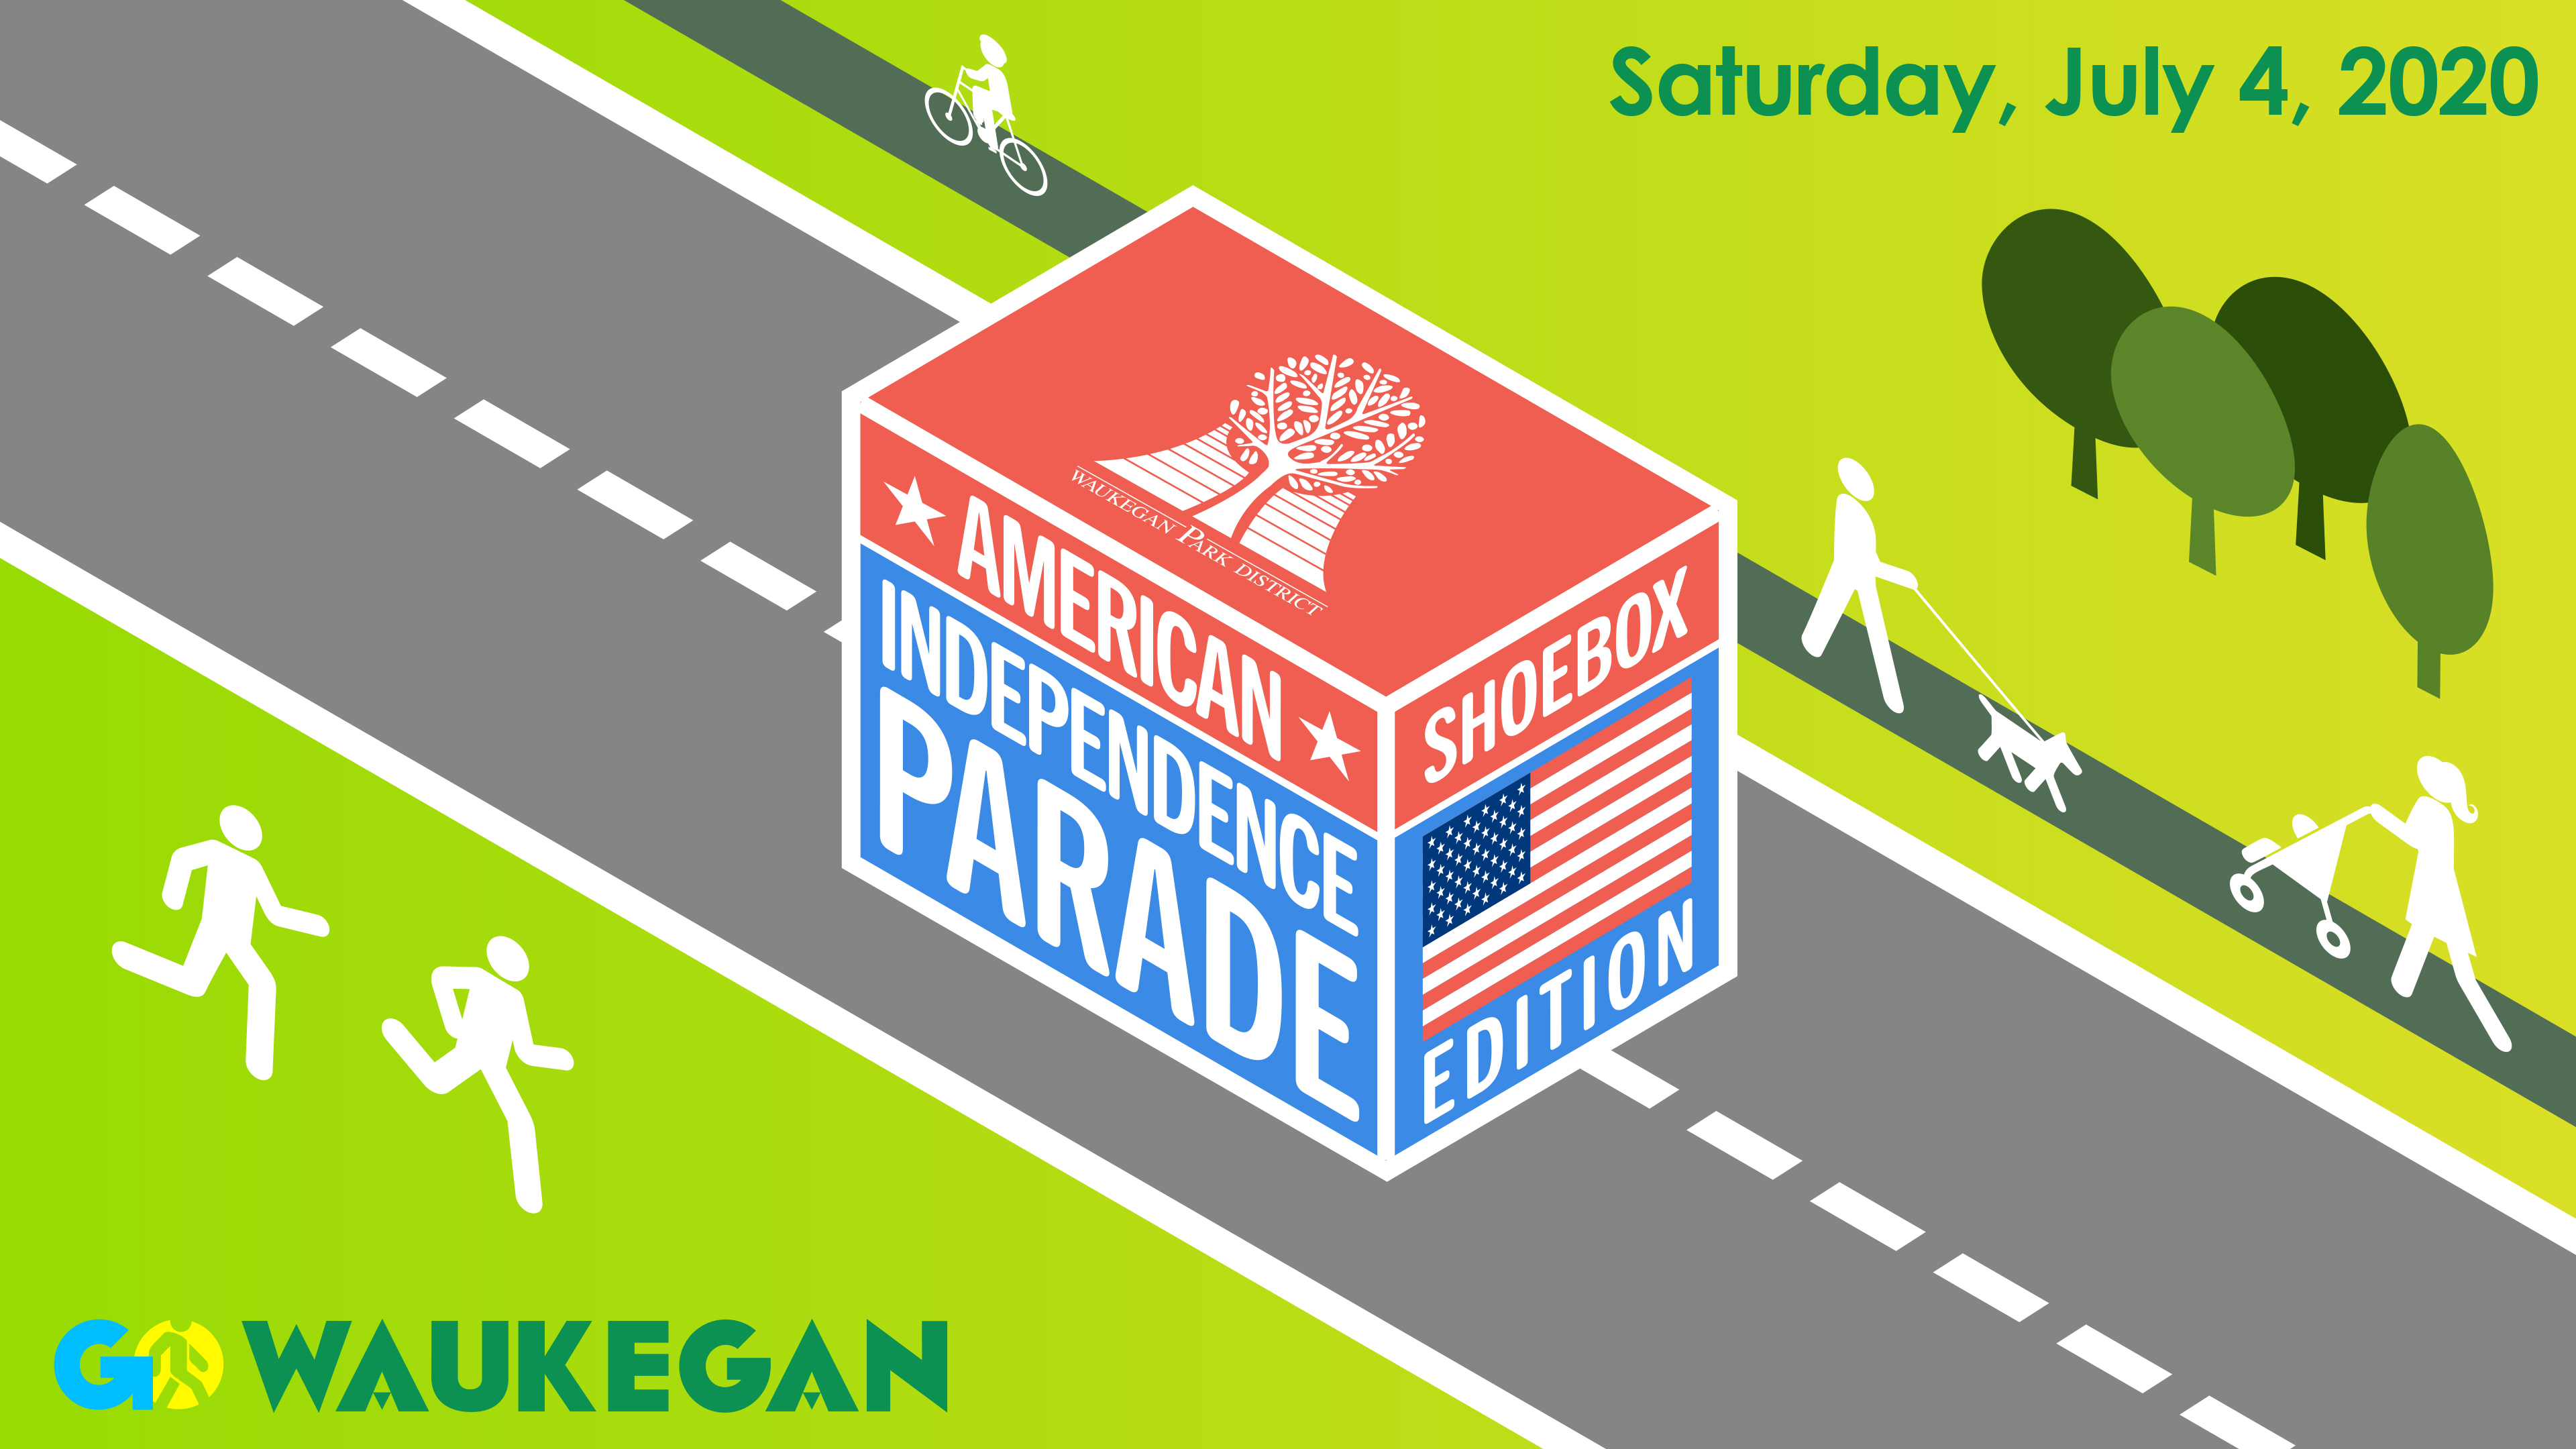 American Independence Parade: Shoebox Edition